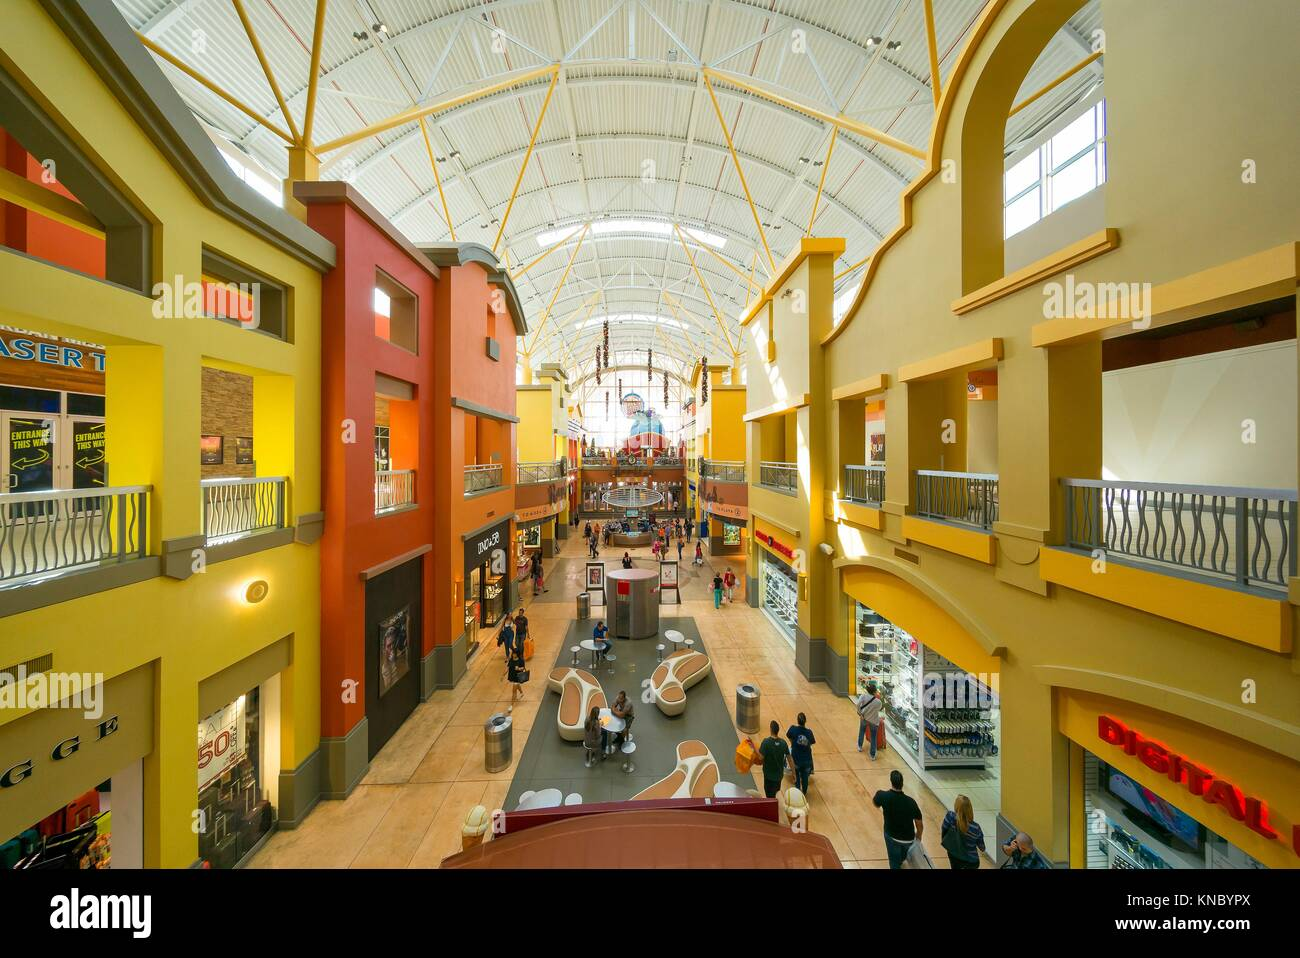 The Dolphin Mall. Miami. Florida. USA Stock Photo  168064370 - Alamy a8409dbfa64df